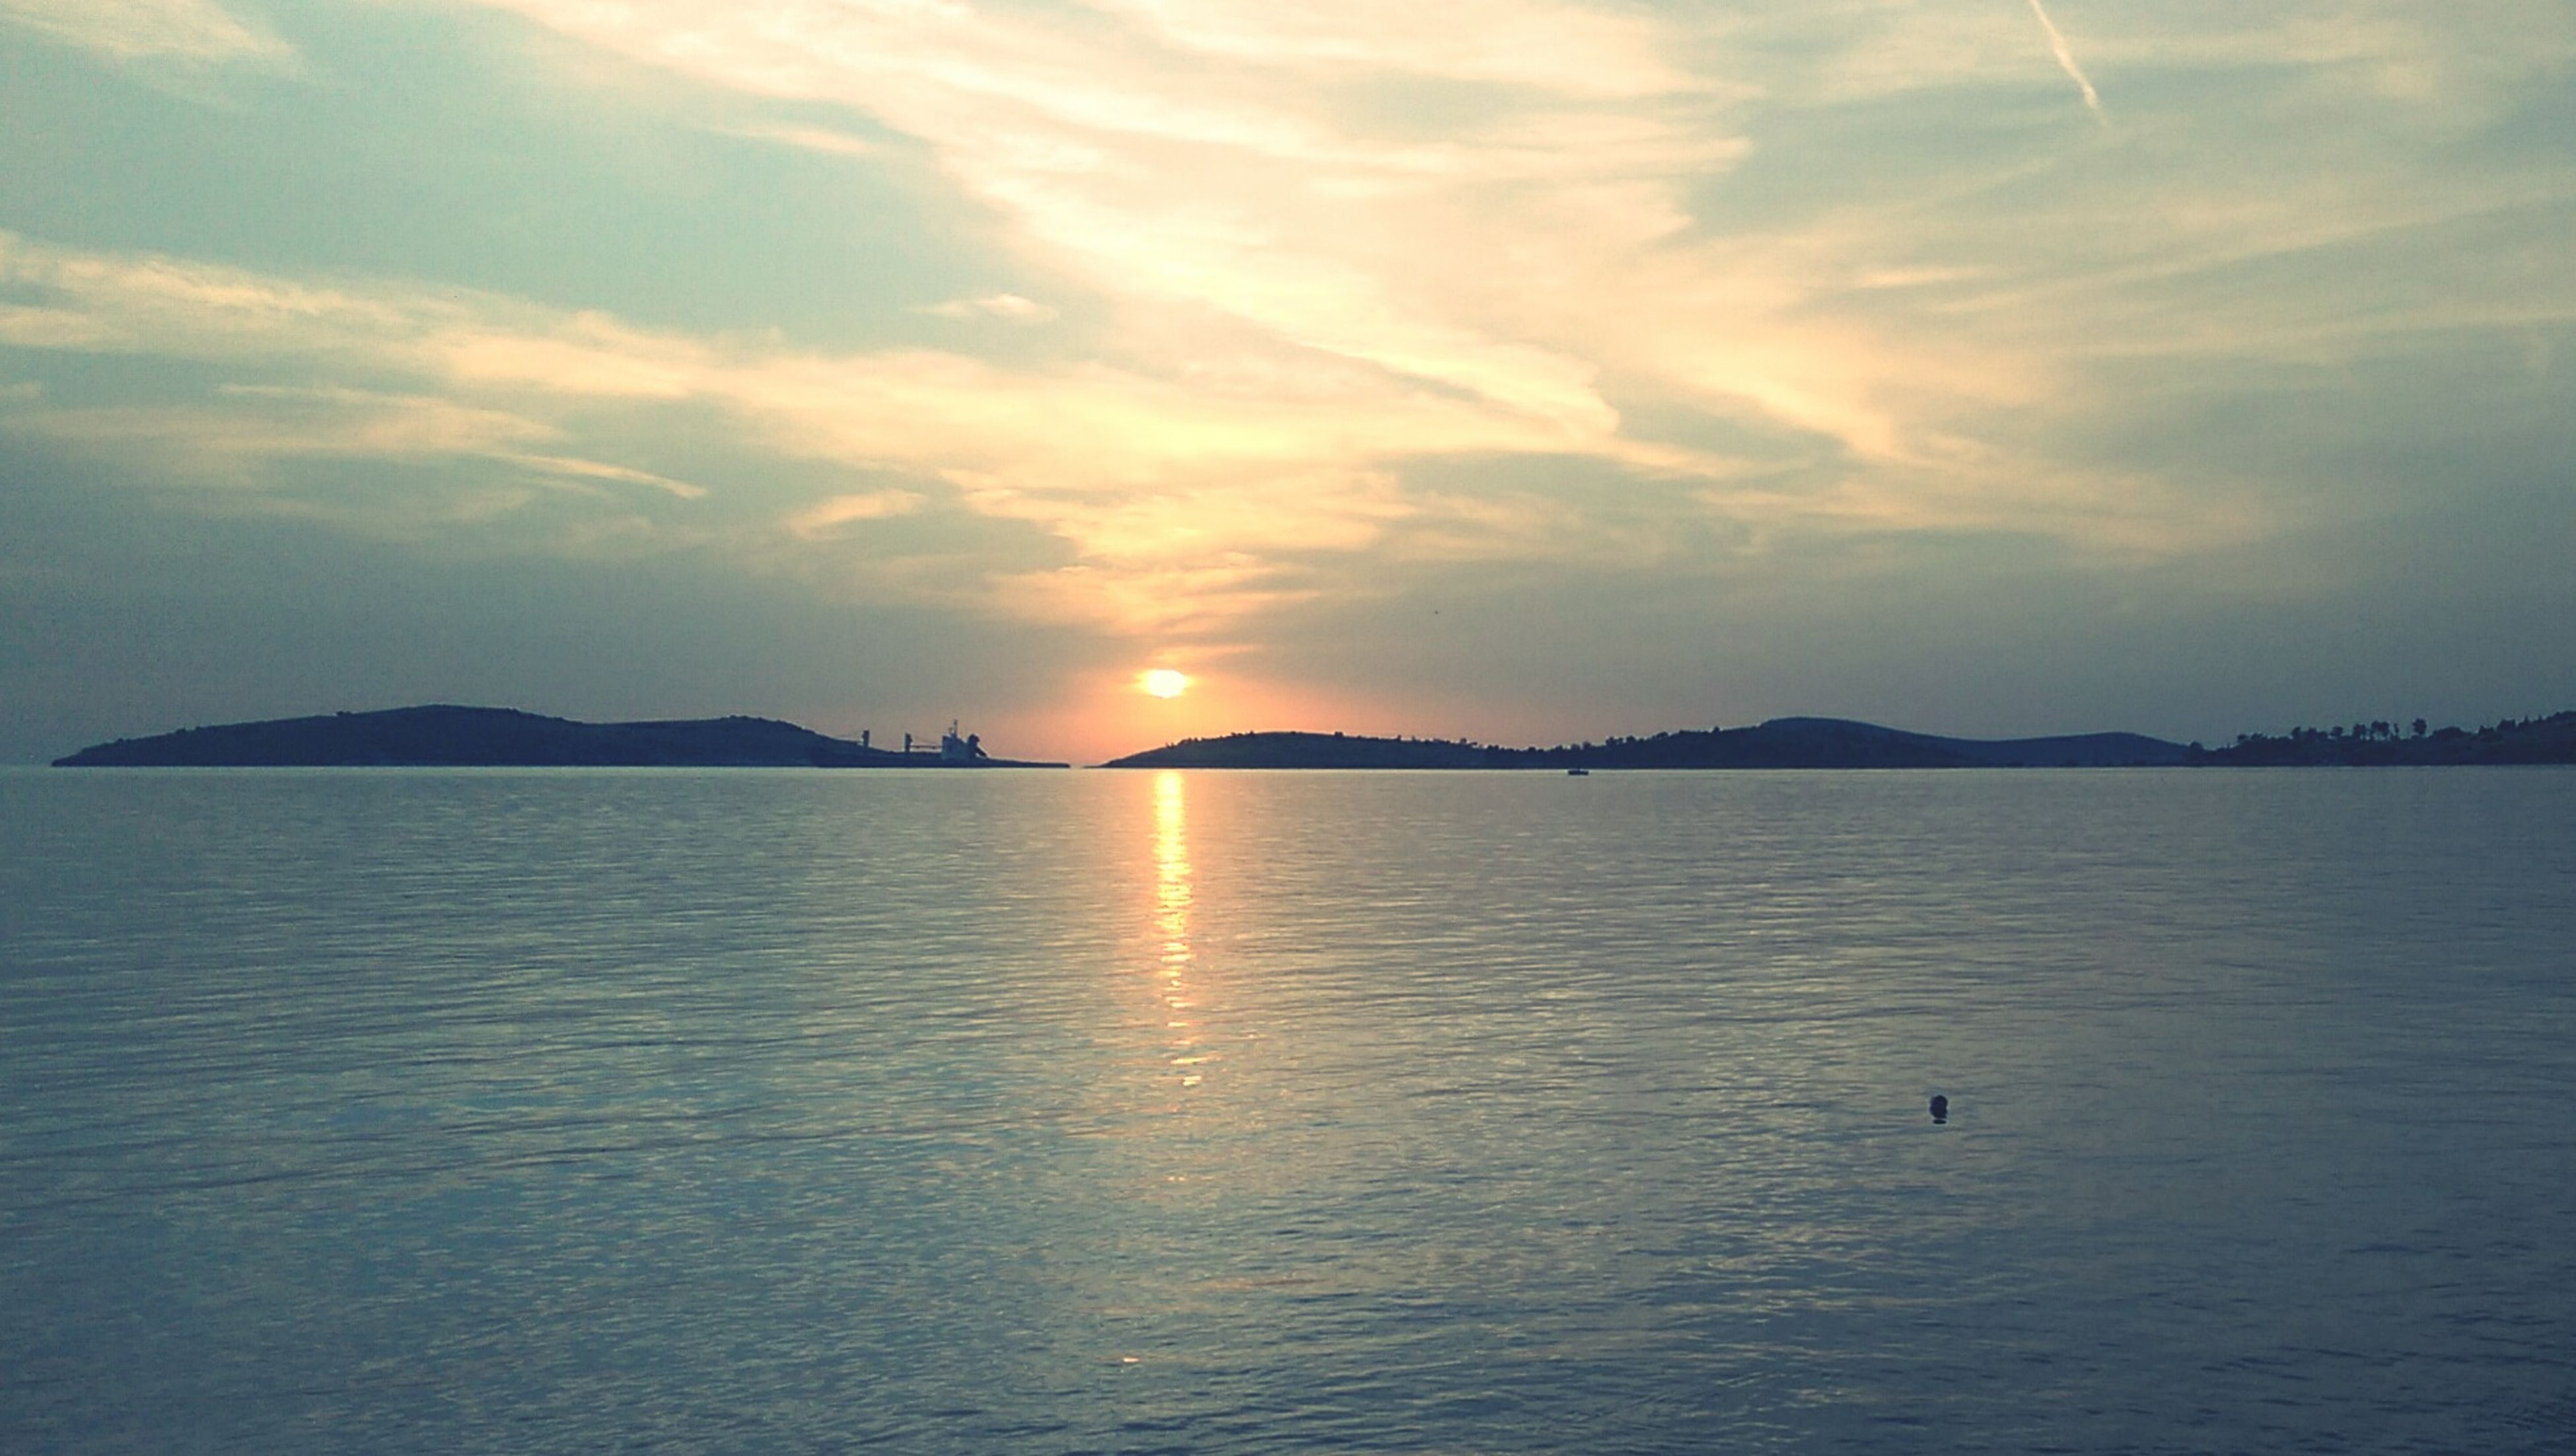 water, sunset, sky, tranquil scene, scenics, sun, tranquility, beauty in nature, reflection, waterfront, cloud - sky, nature, sea, idyllic, sunlight, silhouette, cloud, lake, rippled, outdoors